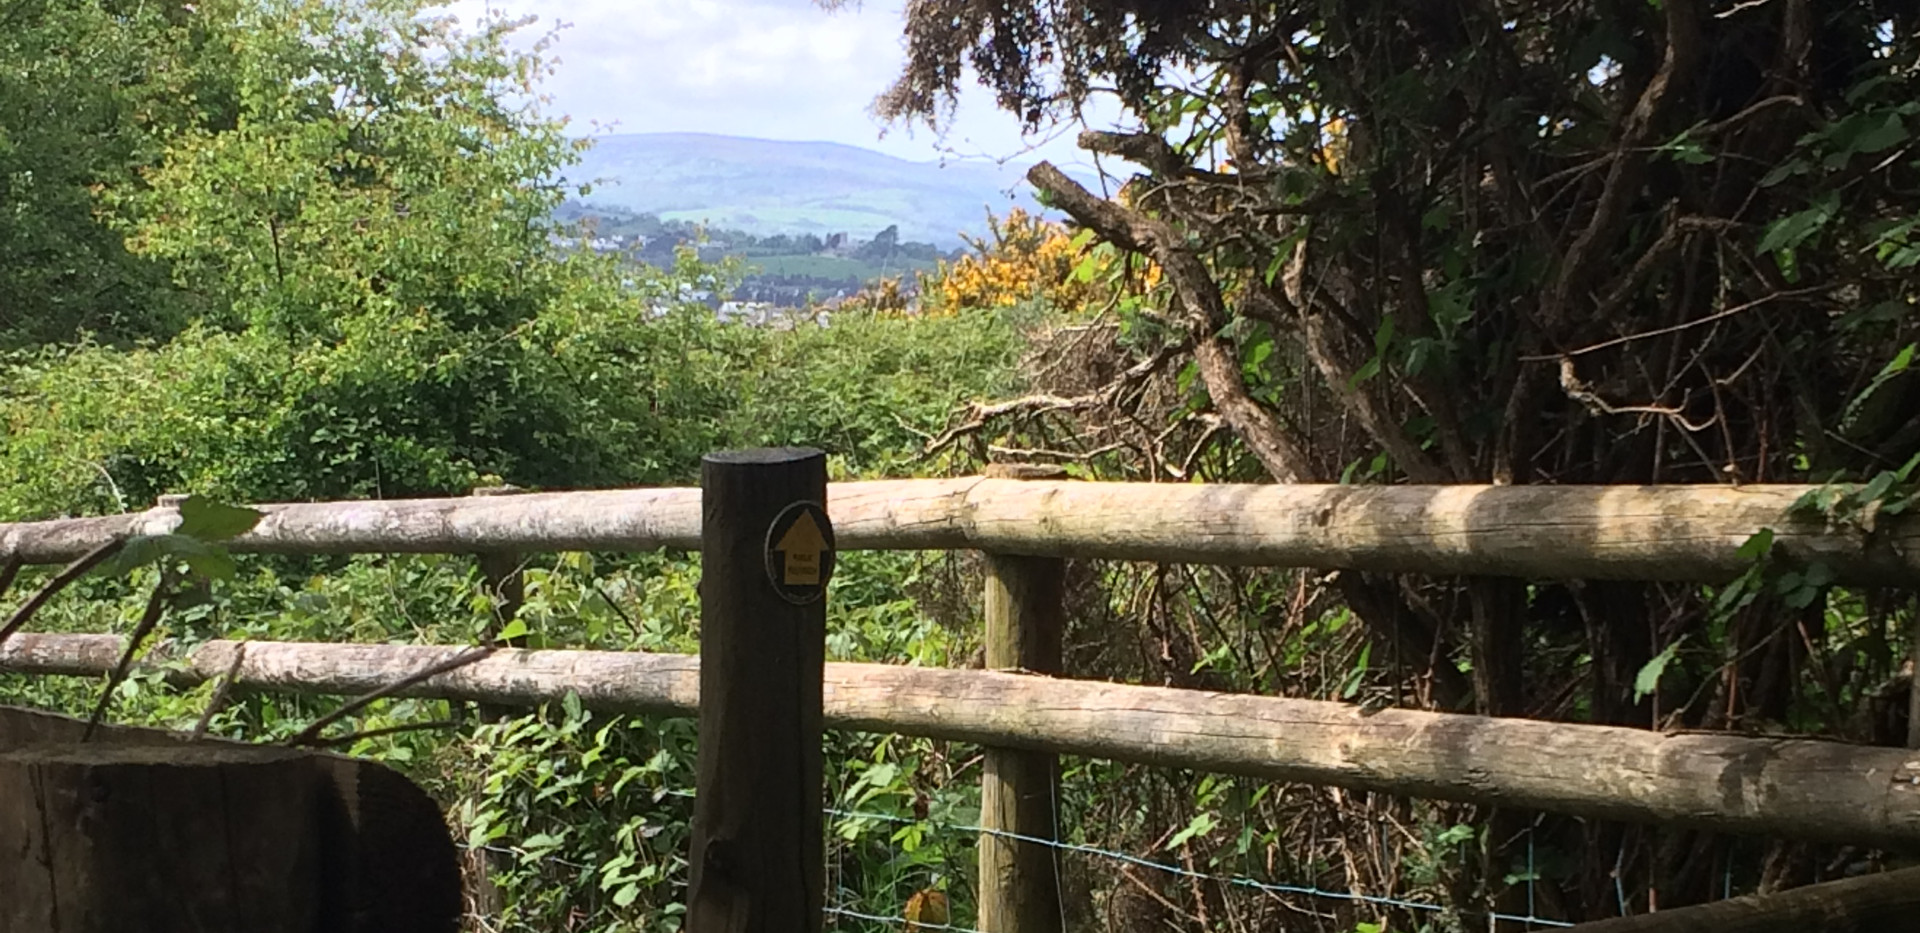 stile at the top of footpath no. 4